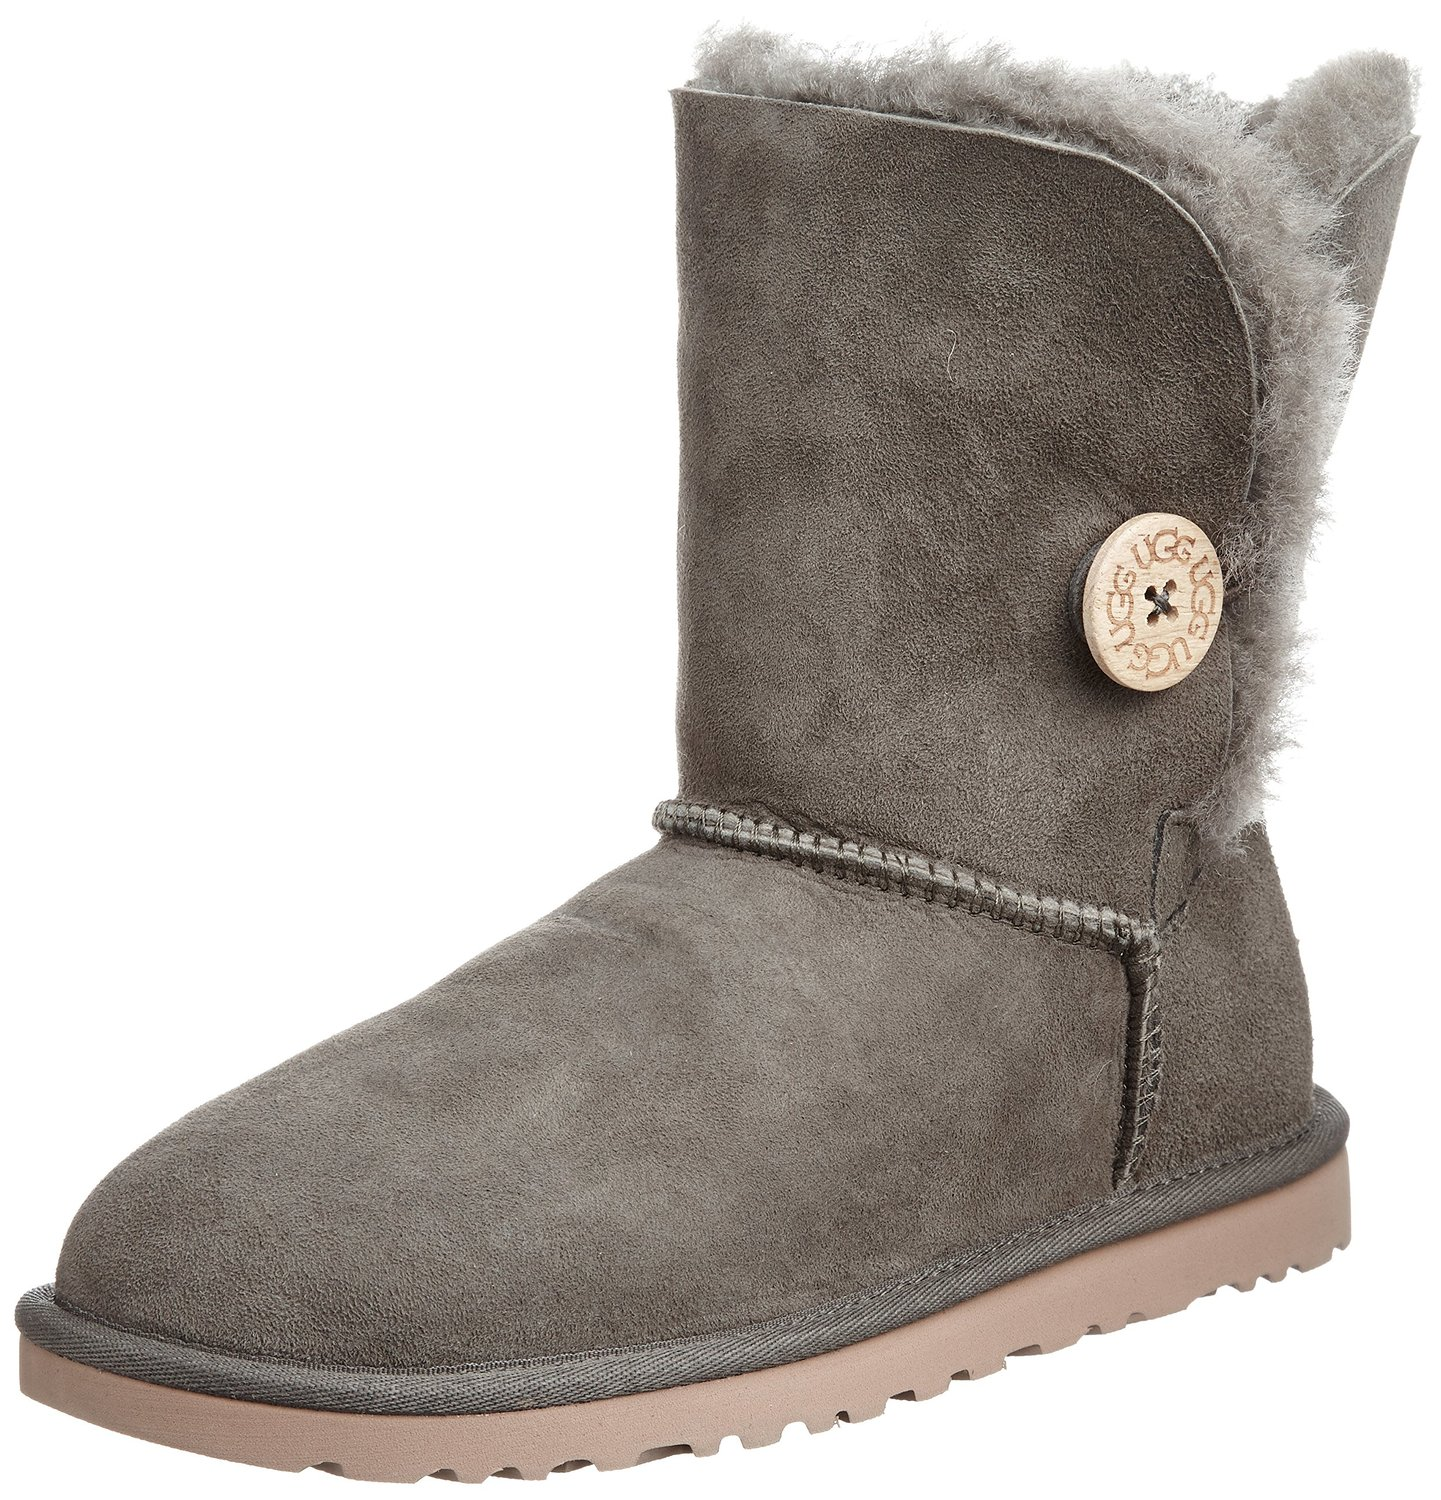 Holiday Deals on UGG Boots. Find a gift for everyone on your list this holiday season with DICK'S Sporting Goods holiday deals, including incredible Black Friday deals and Cyber Monday savings.. UGG boots and footwear deliver classic style and luxe warmth for men, women and kids.